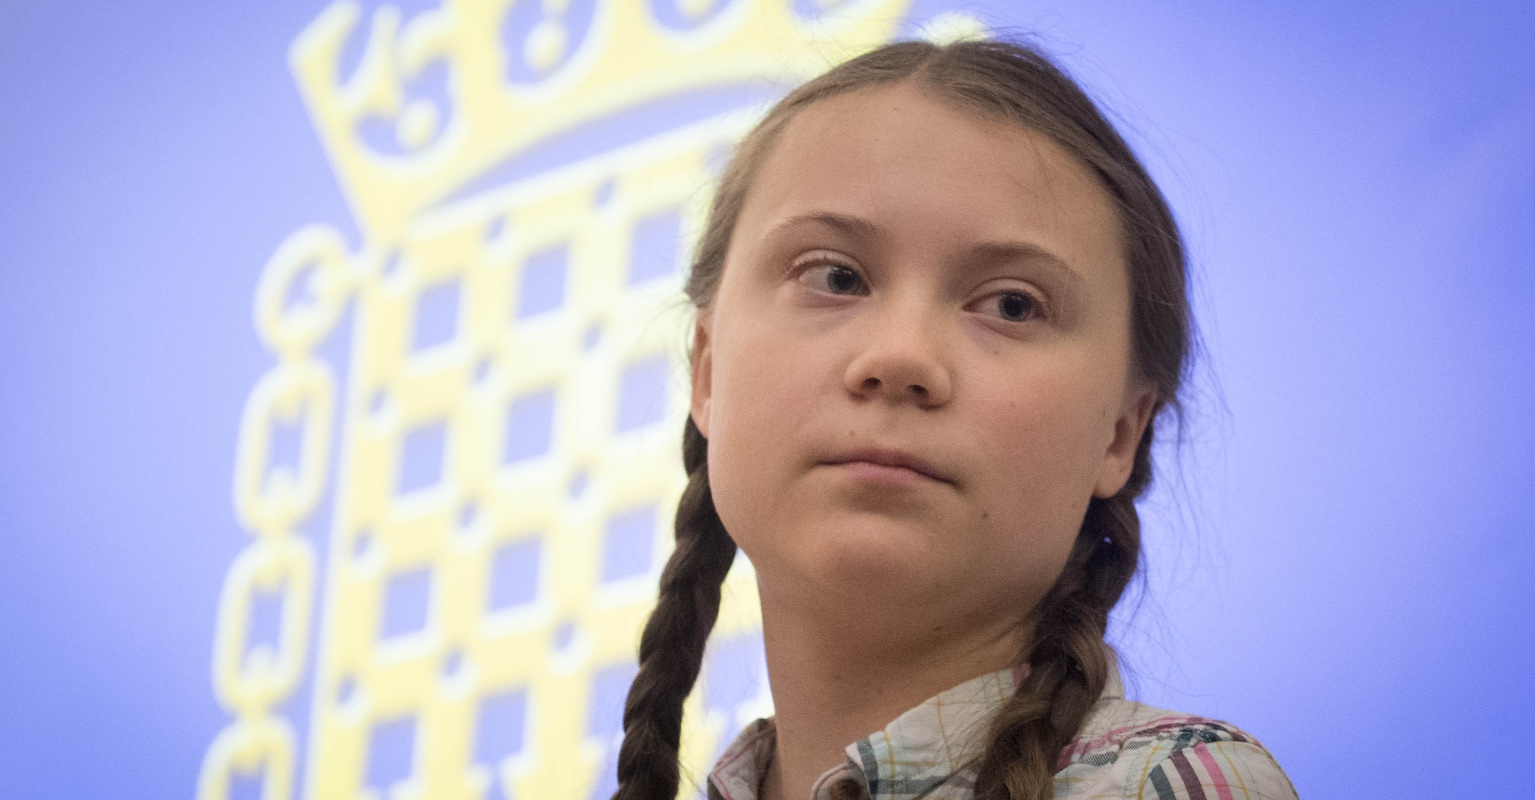 Greta Thunberg expertly shuts down Ted Cruz on Twitter, one day after mocking Trump